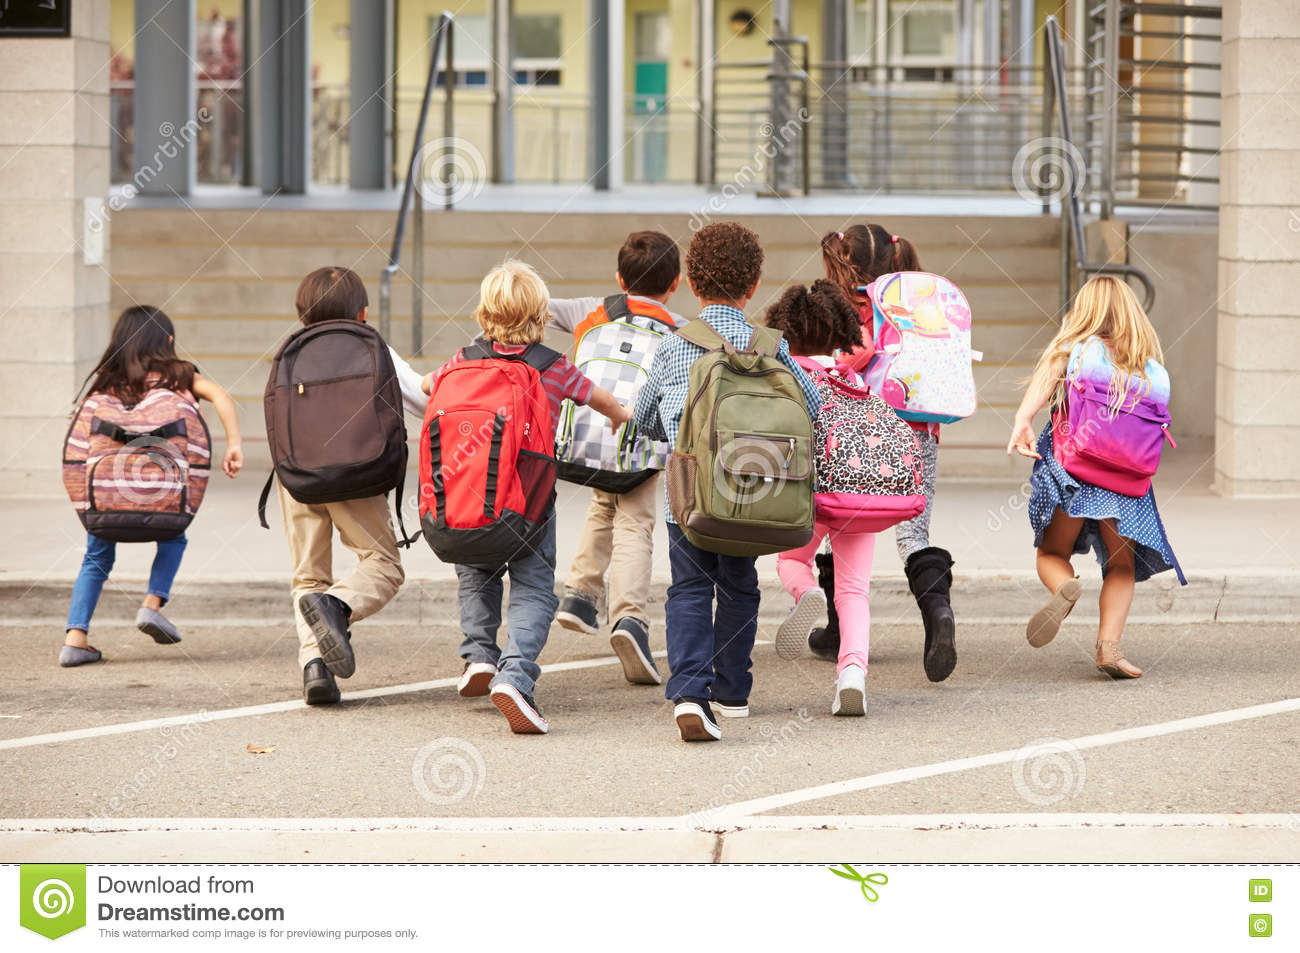 children running in school - photo #17